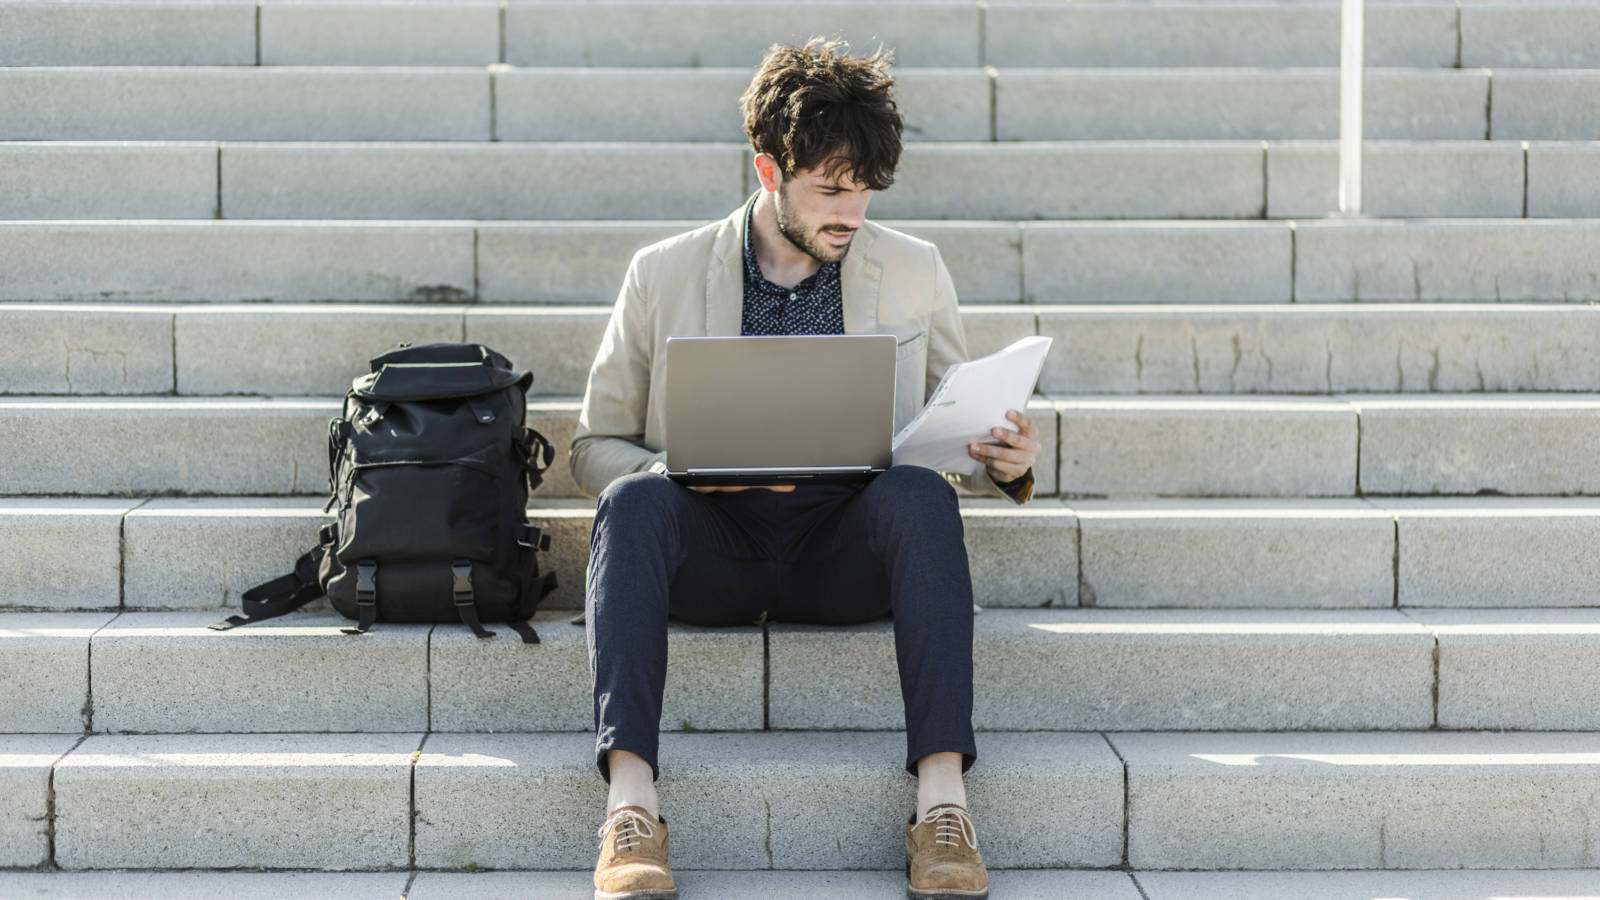 Young man on steps looking at laptop and papers